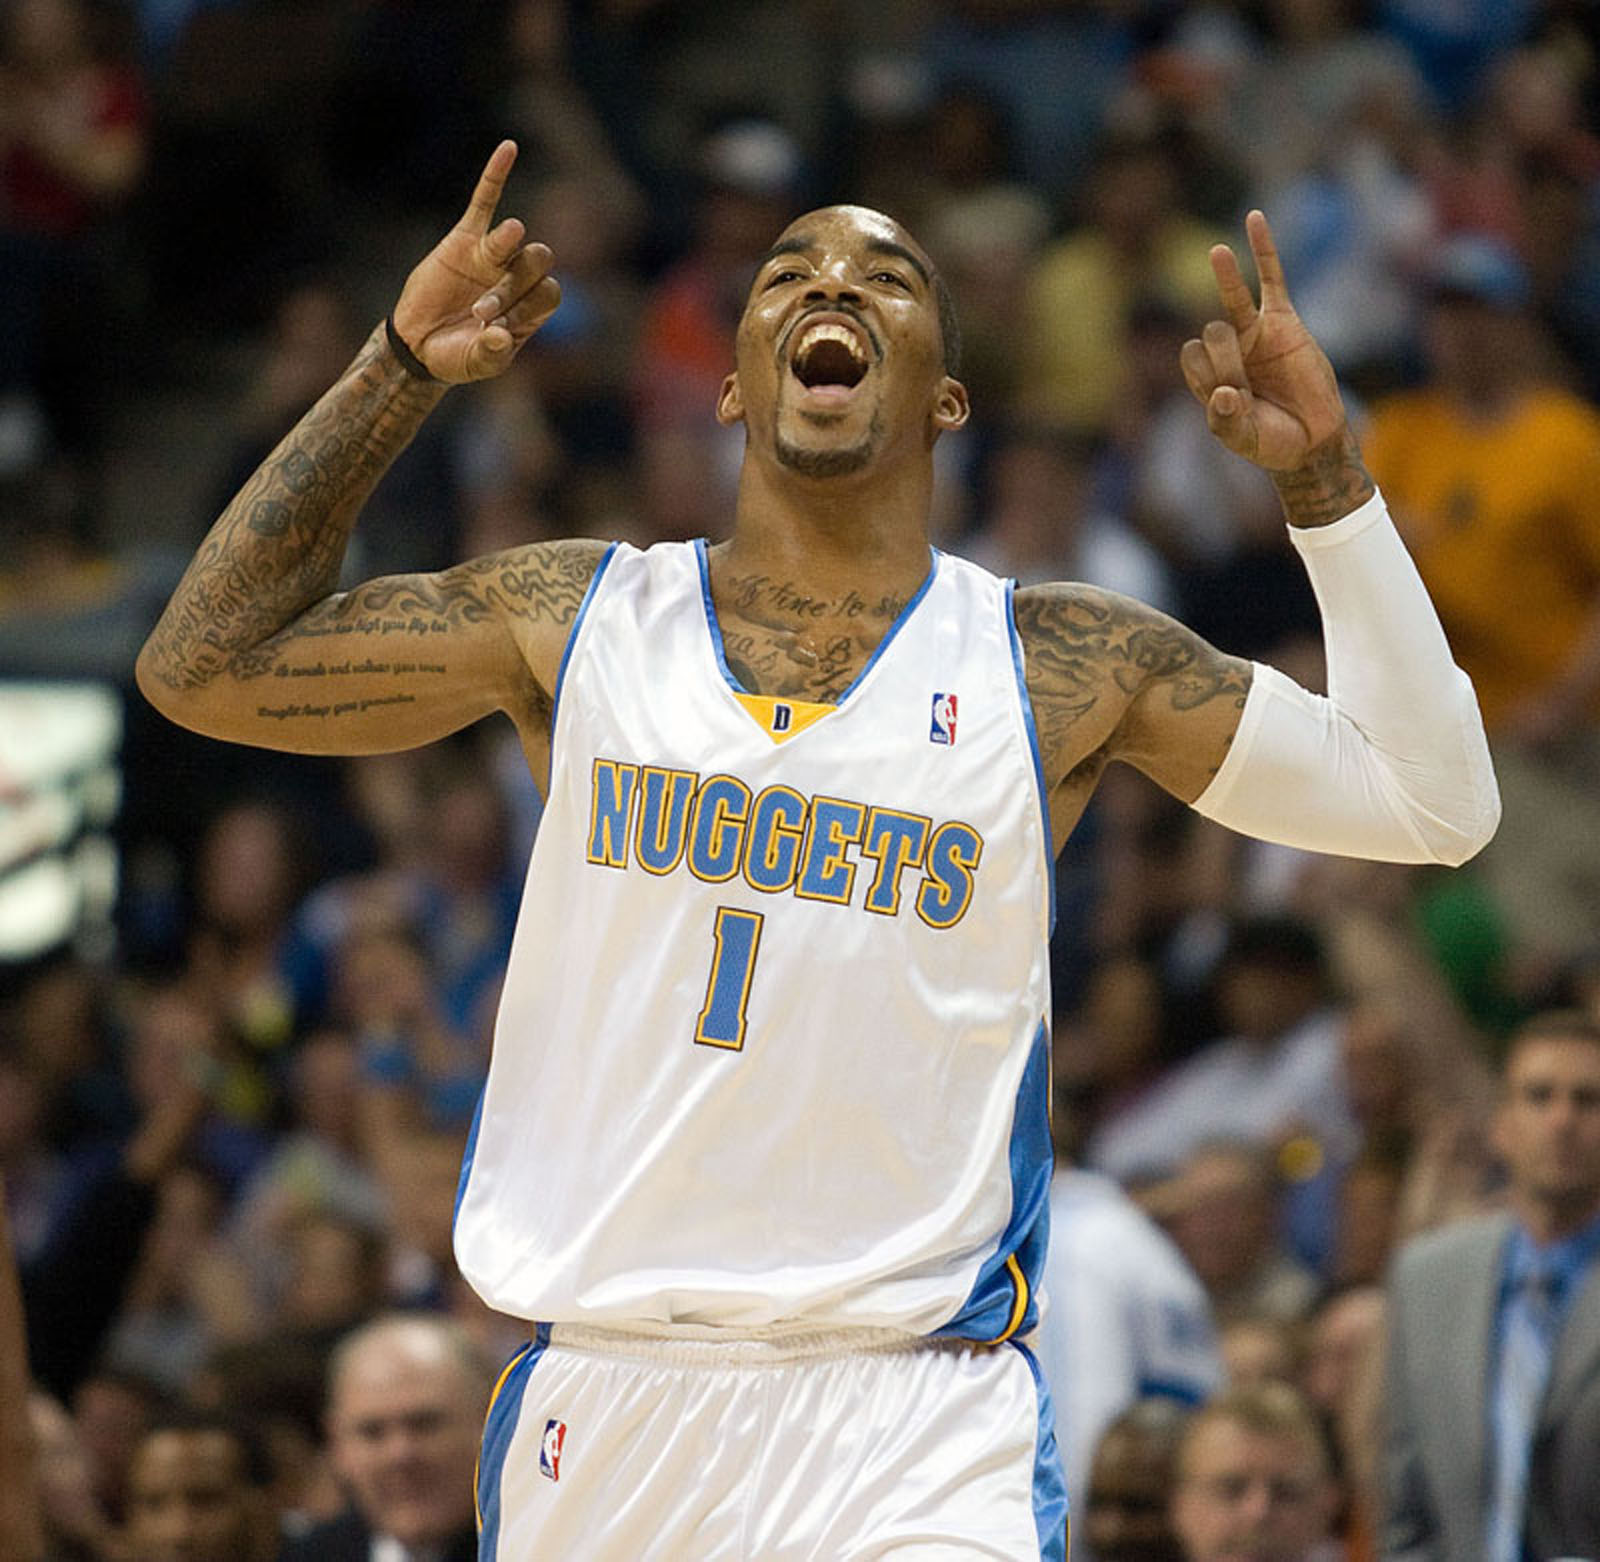 Nuggets Best Players: This Day In Nuggets History: JR Smith Comes To Denver